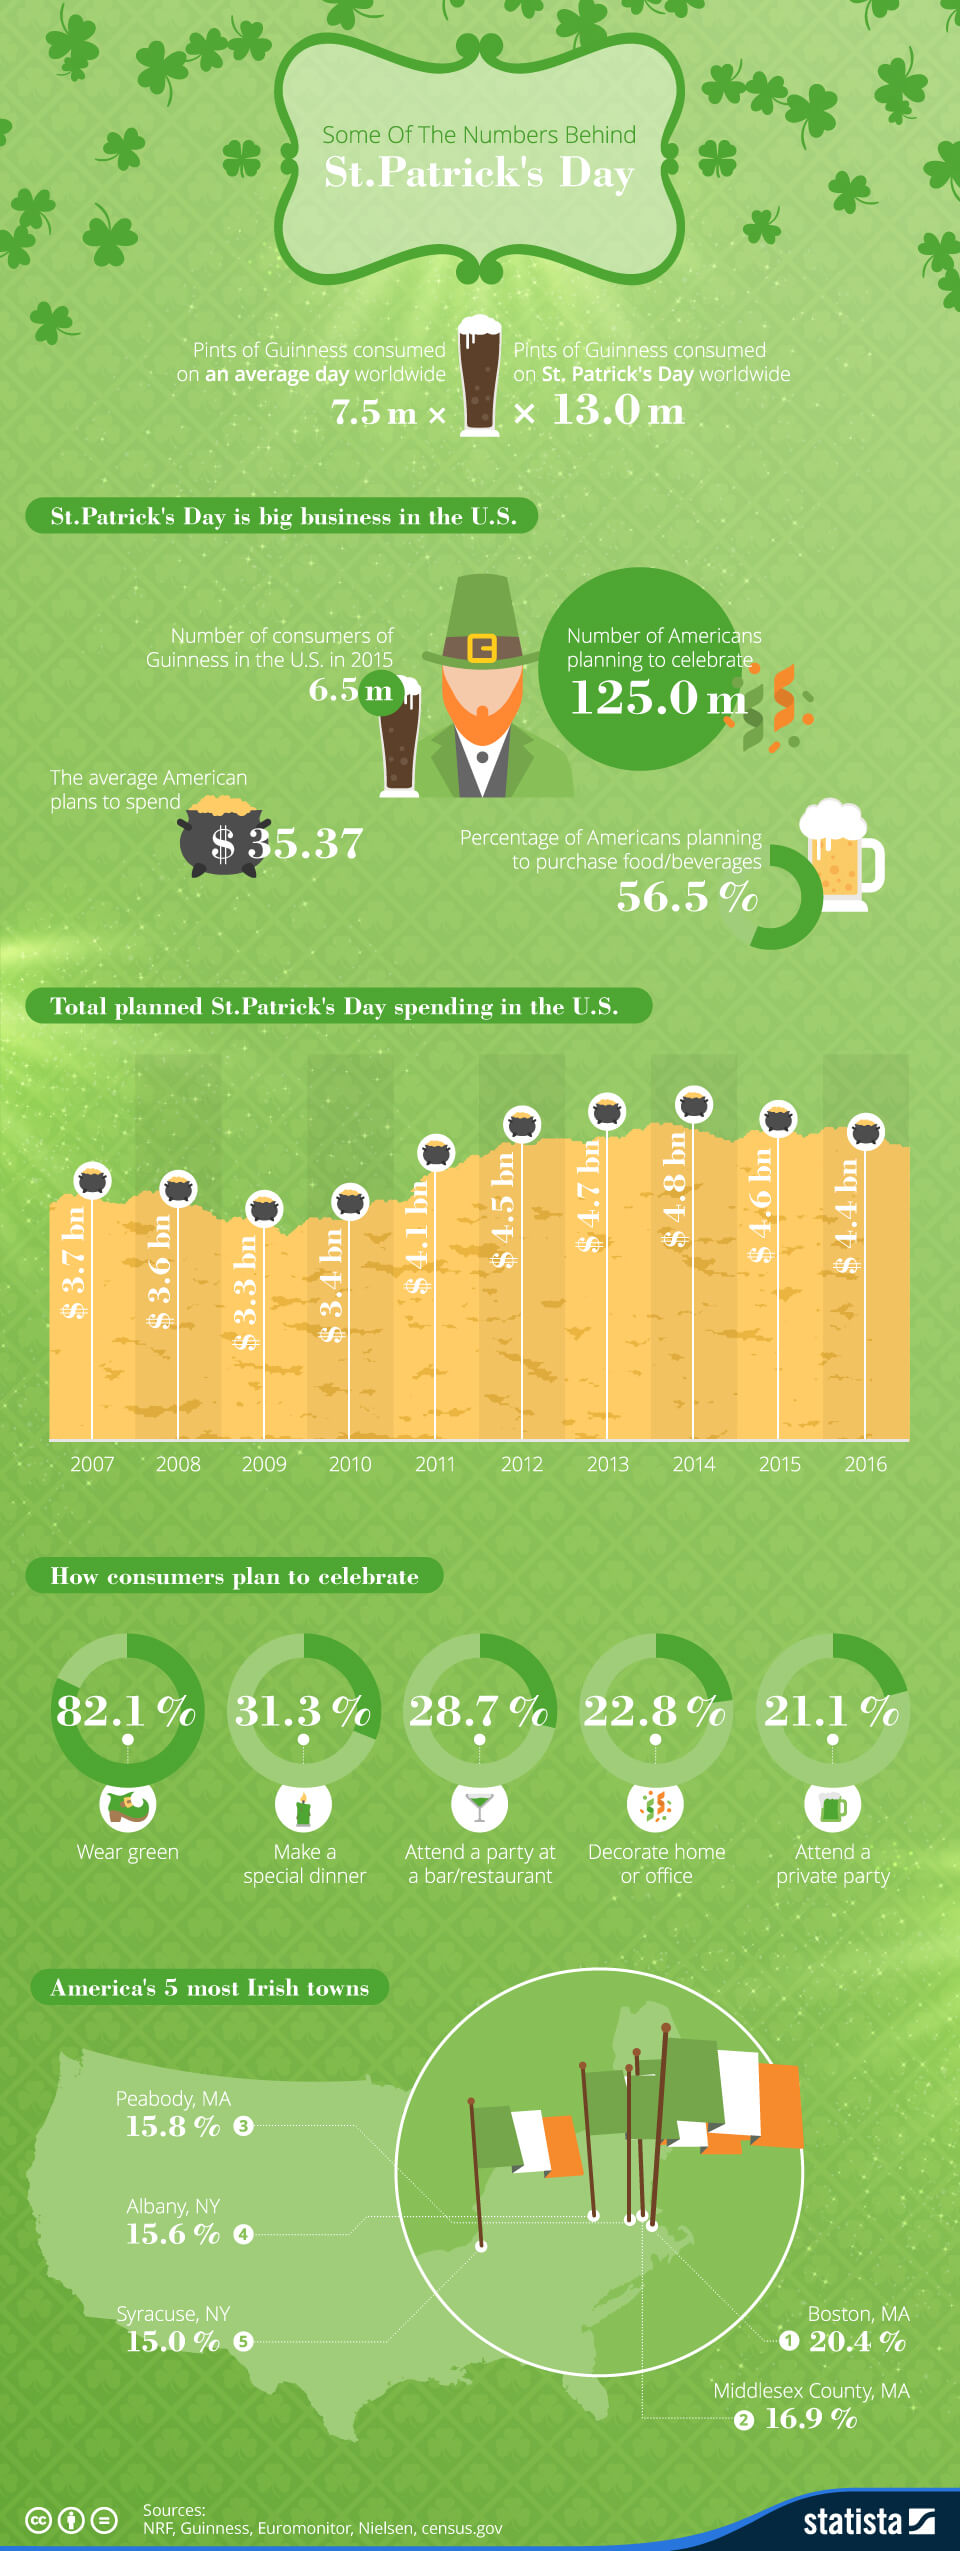 Infographic: Some Of The Numbers Behind St. Patrick's Day  | Statista